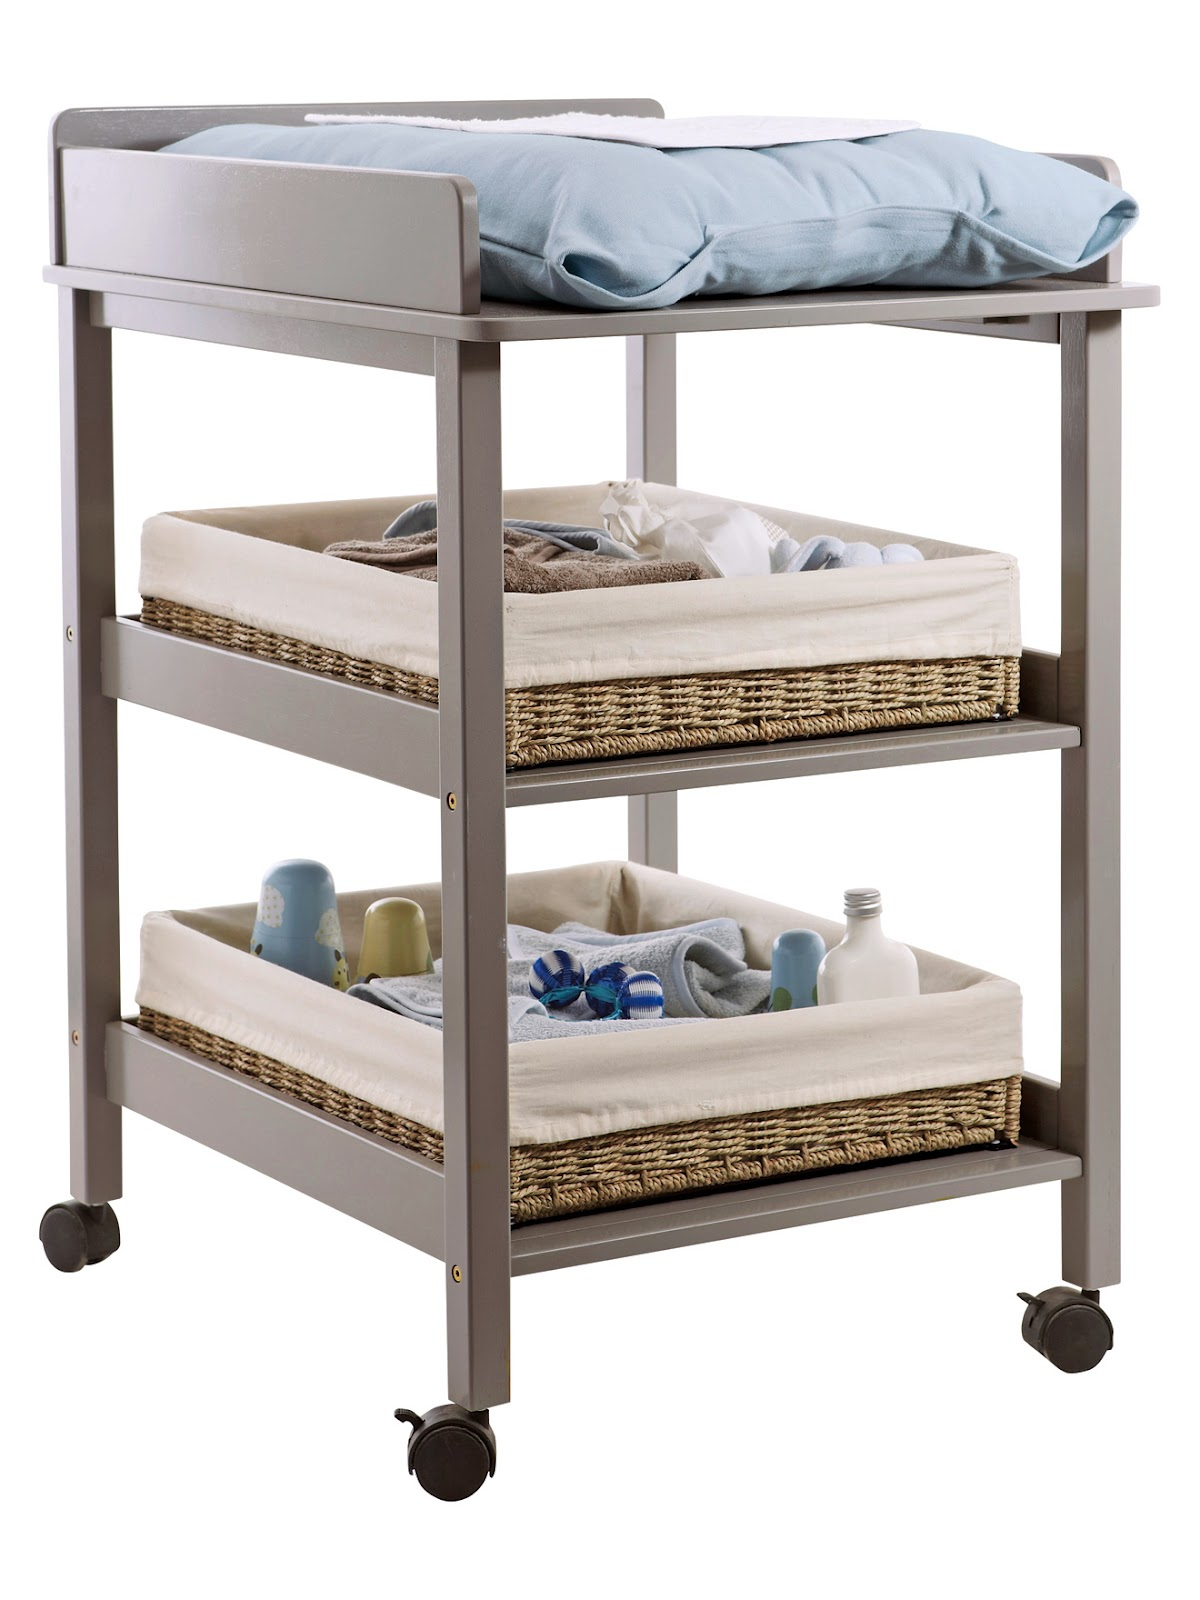 Valeasc world changing table change of plan - Table a langer compact ...